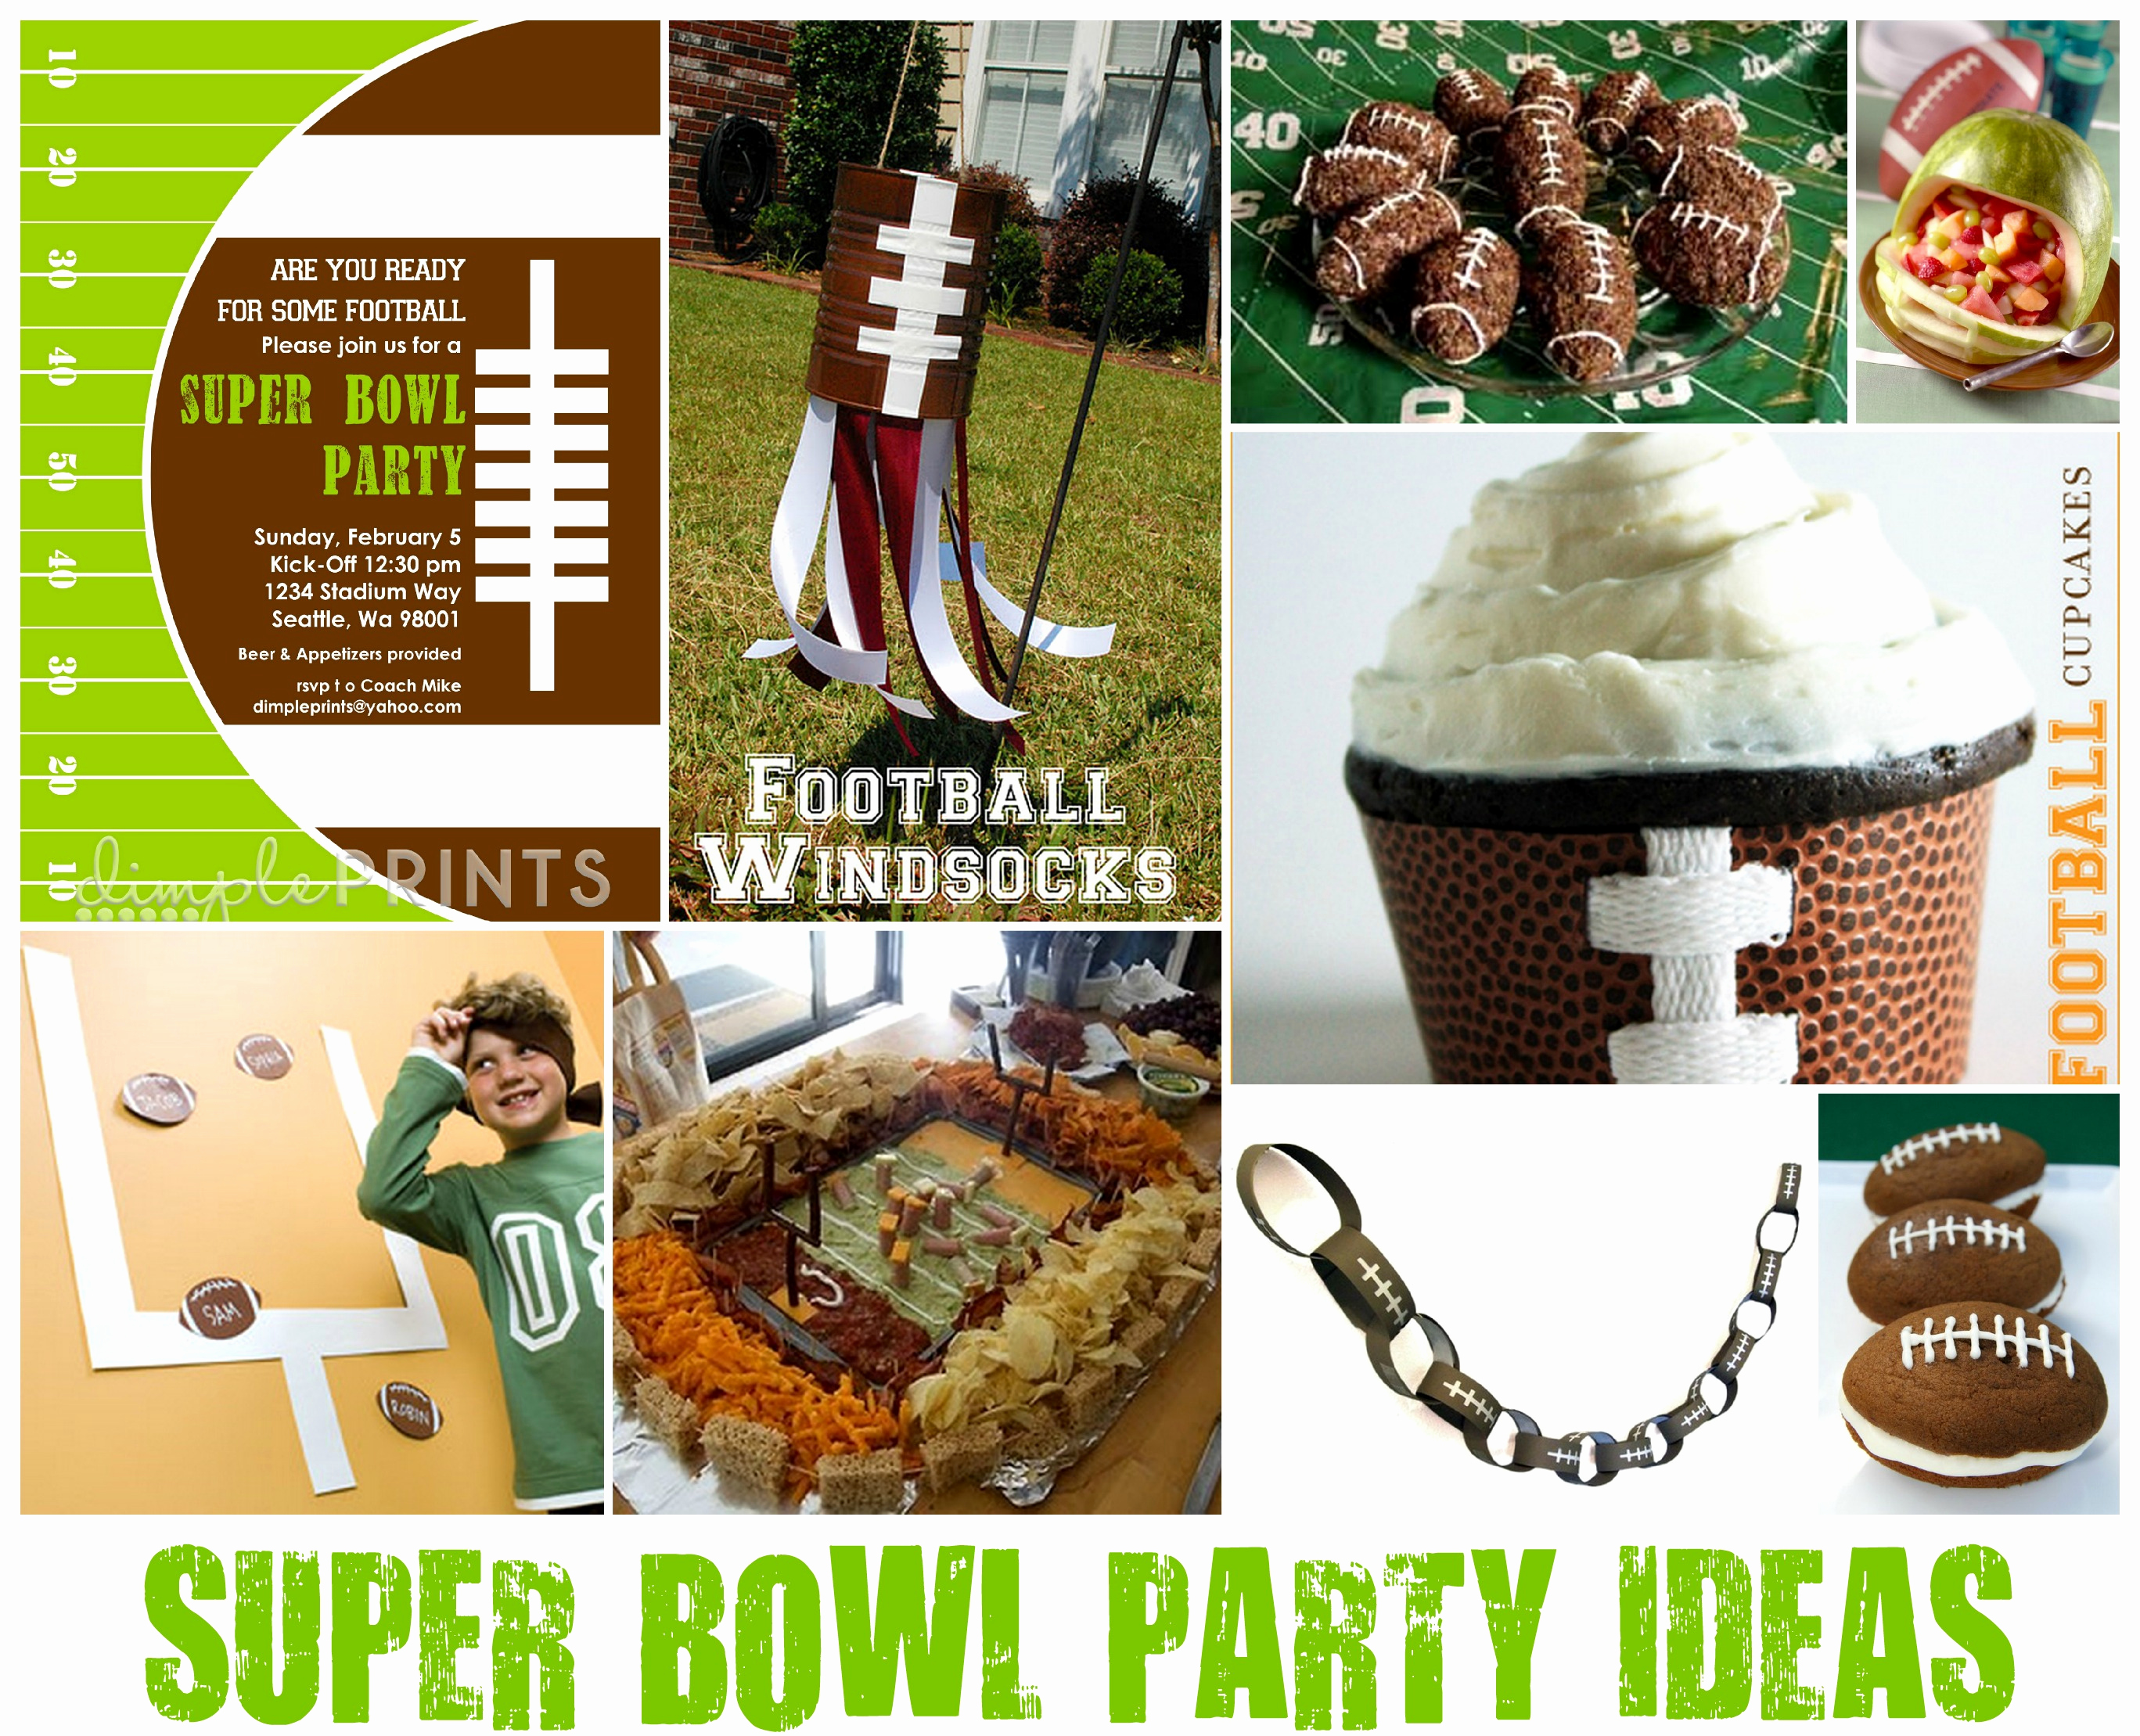 Super Bowl Invitation Ideas Elegant Super Bowl Party Ideas Dimple Prints